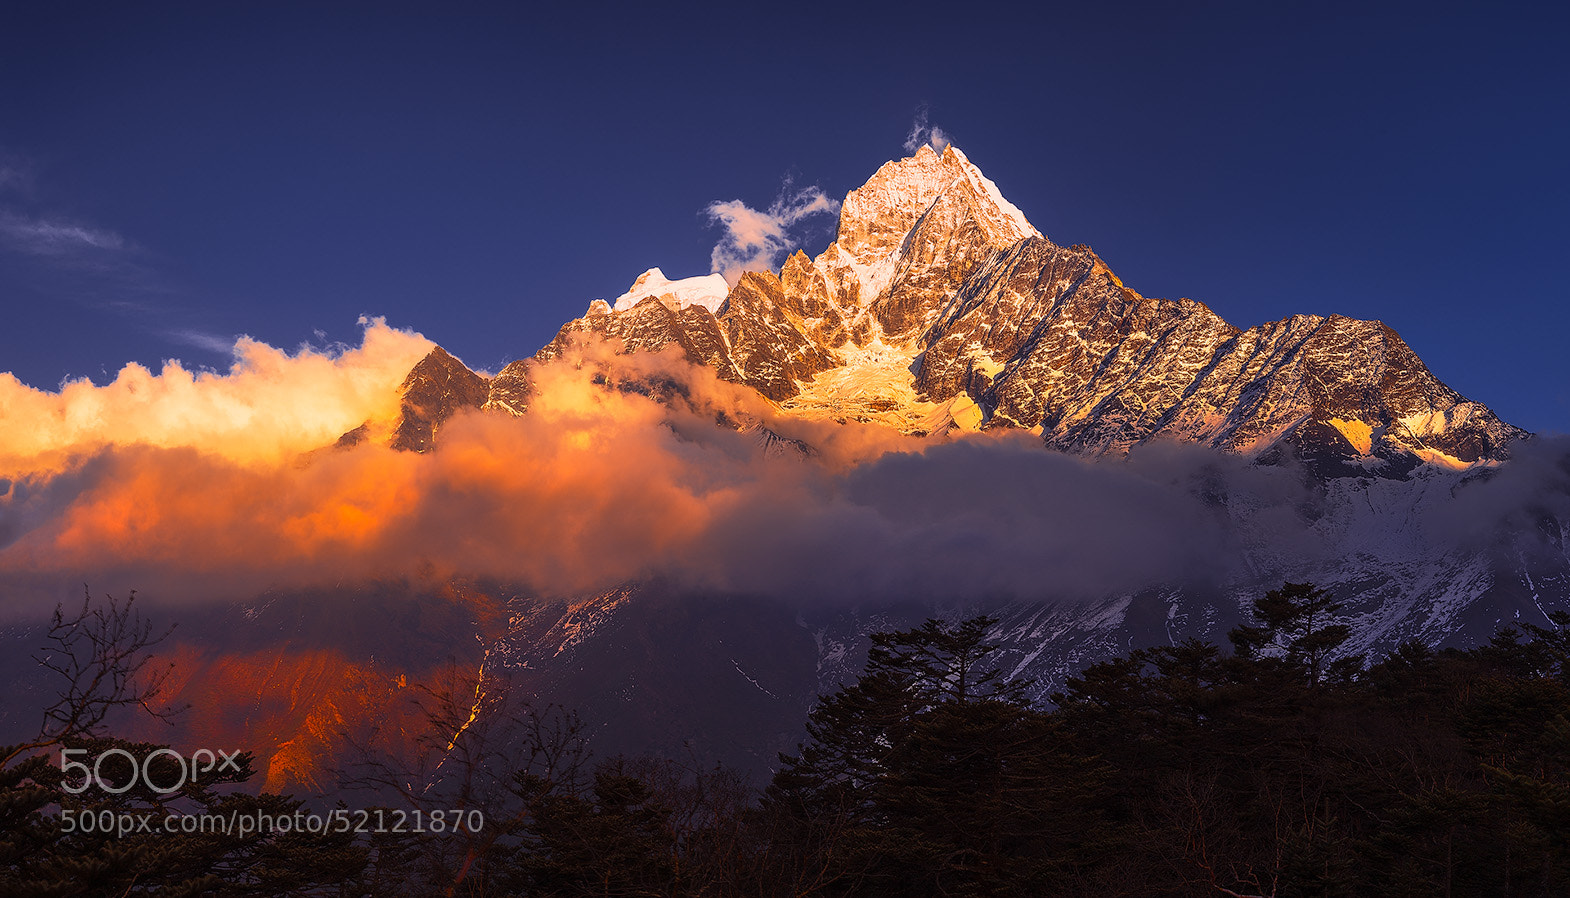 Photograph Himalayan Light by Dylan Gehlken on 500px